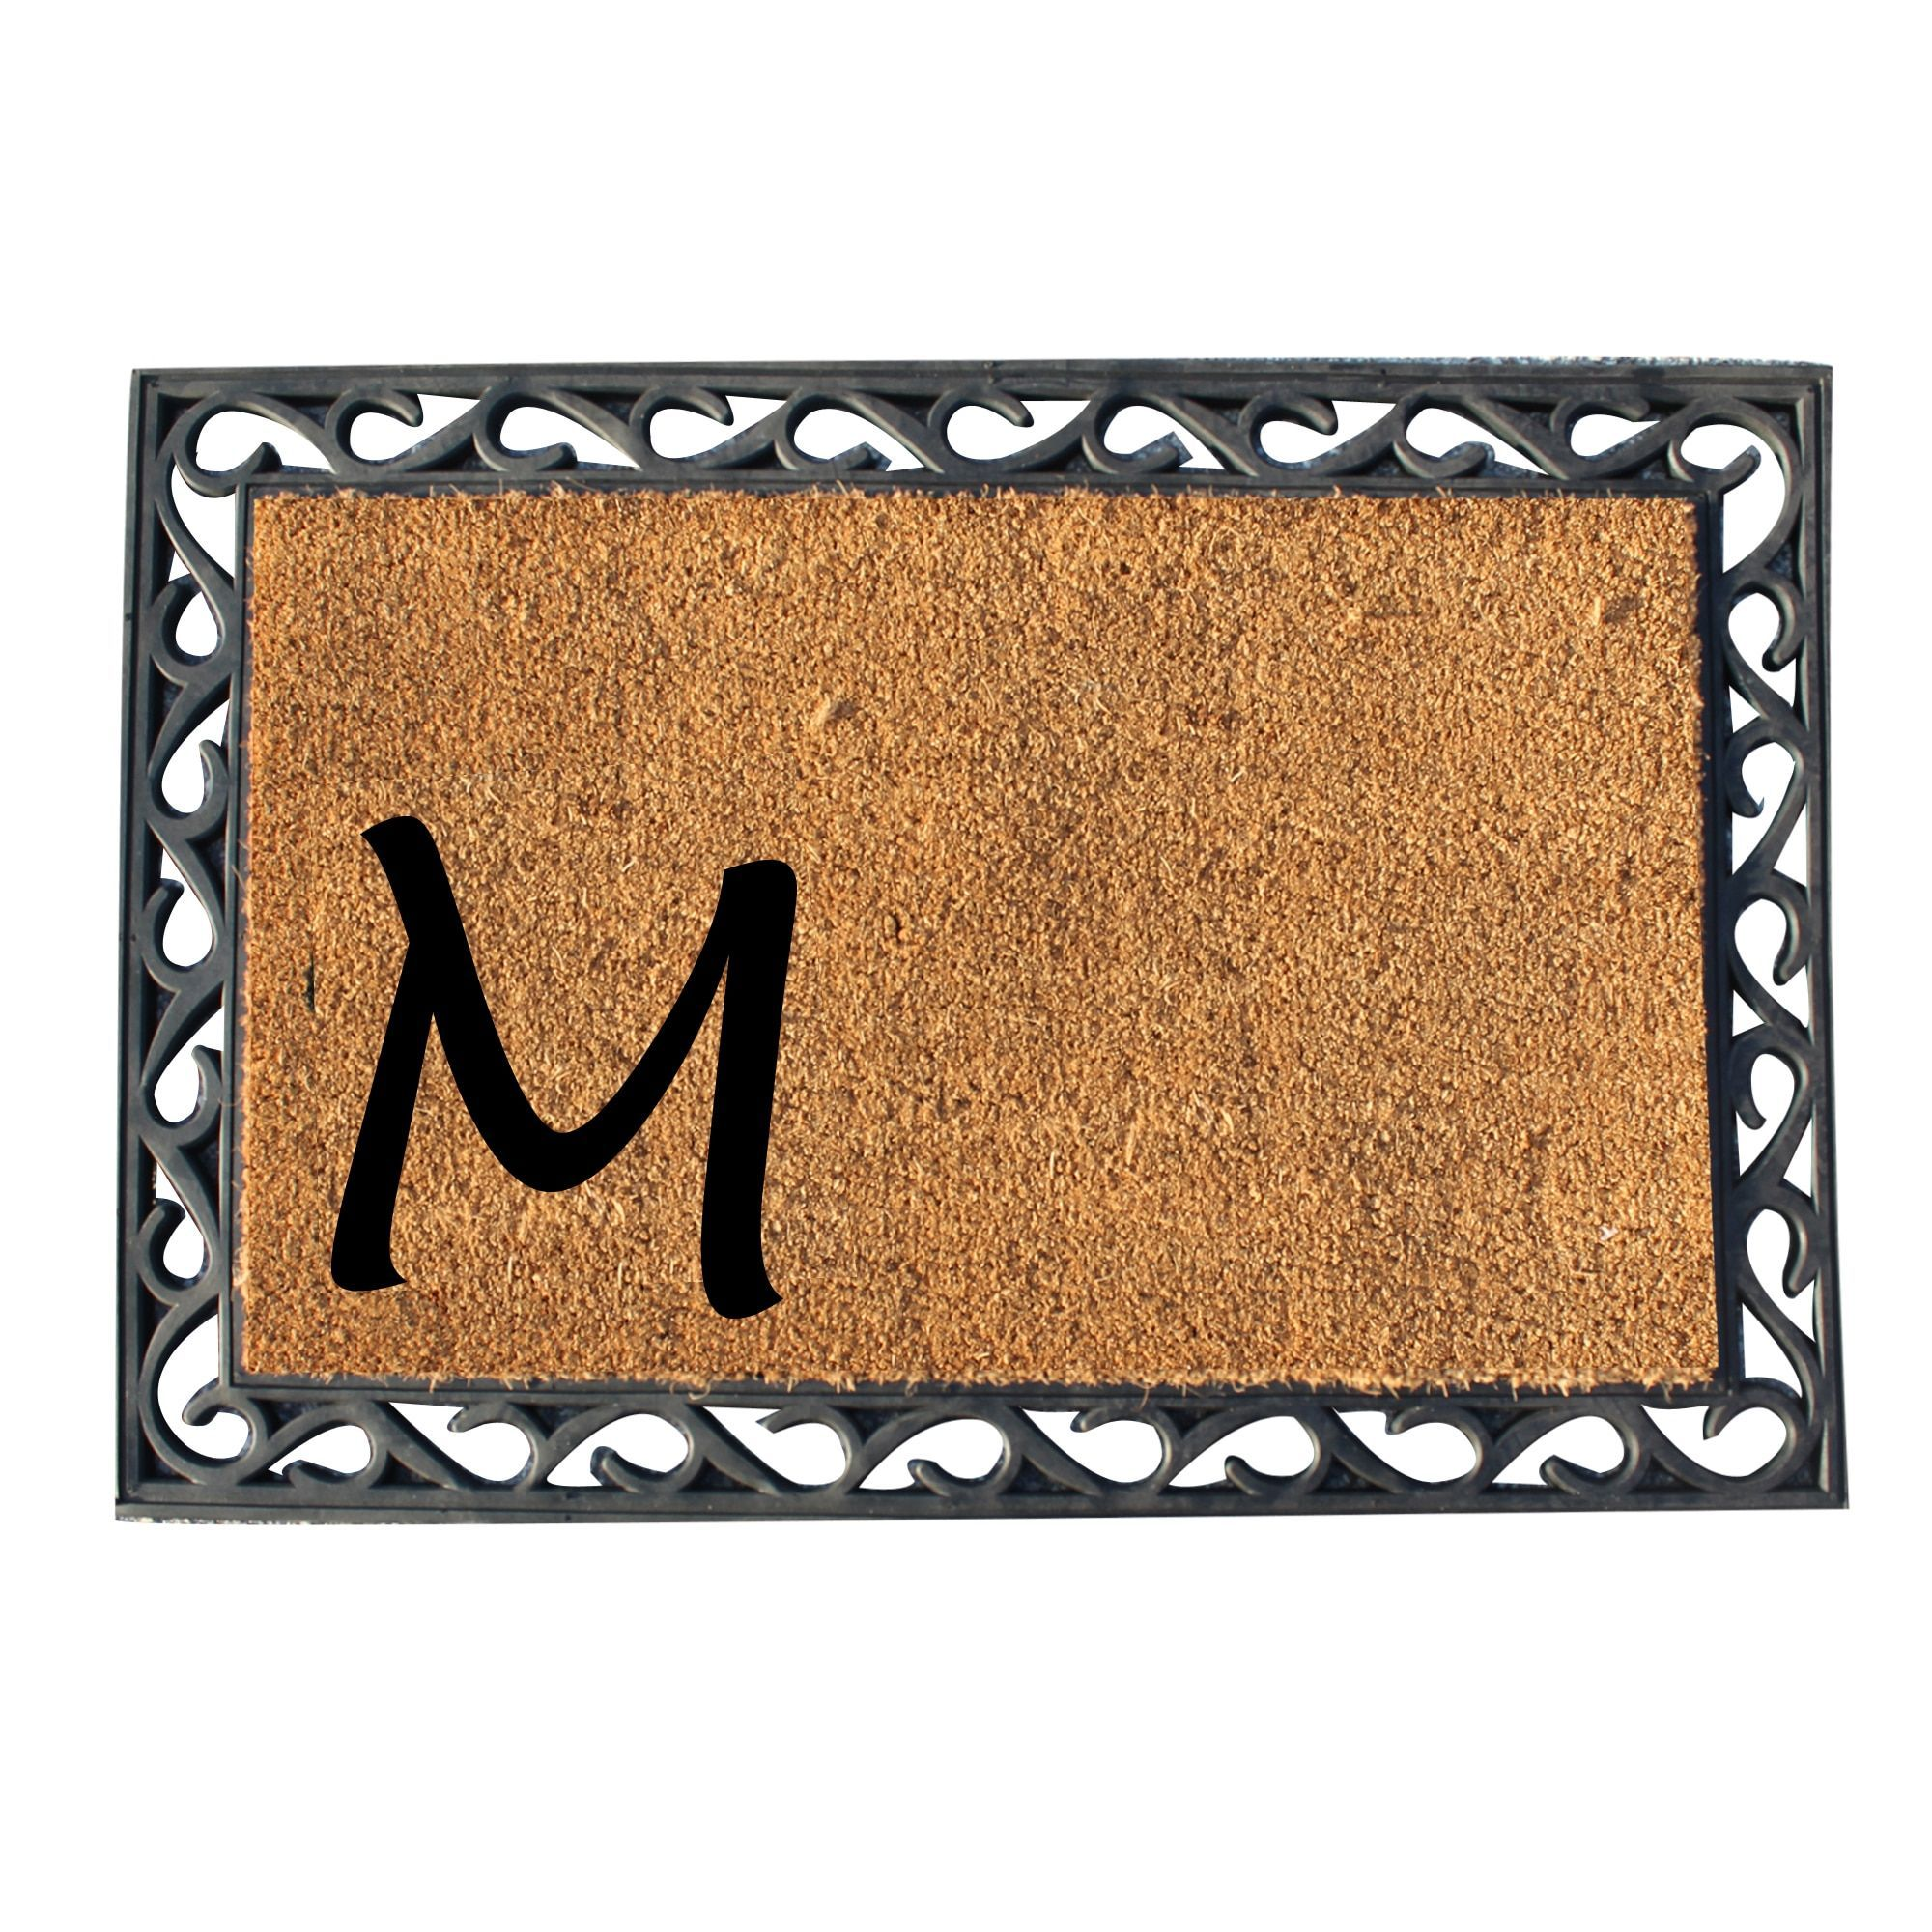 Ahc first impression beigeblack rubber tray mat with monogrammed